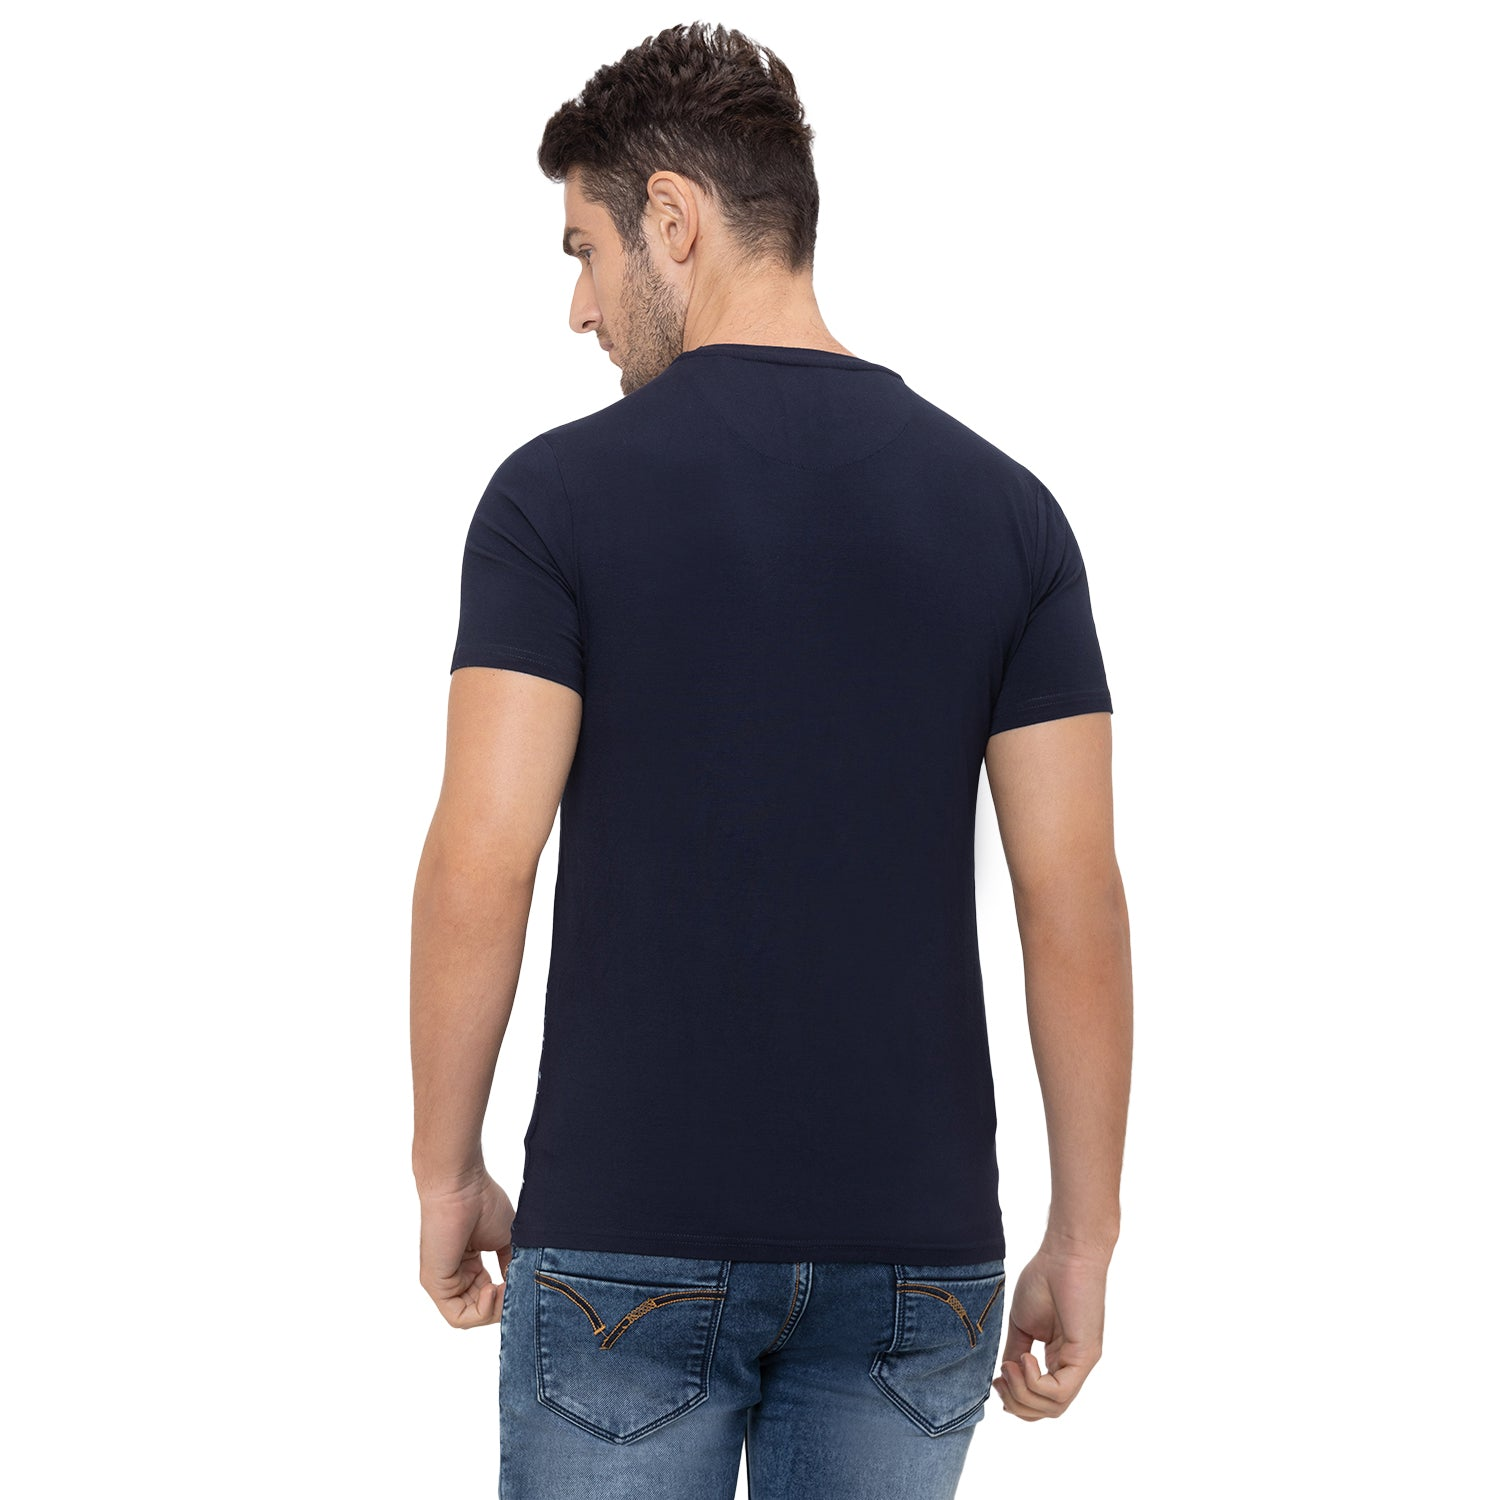 Globus Navy Blue Printed T-Shirt-3